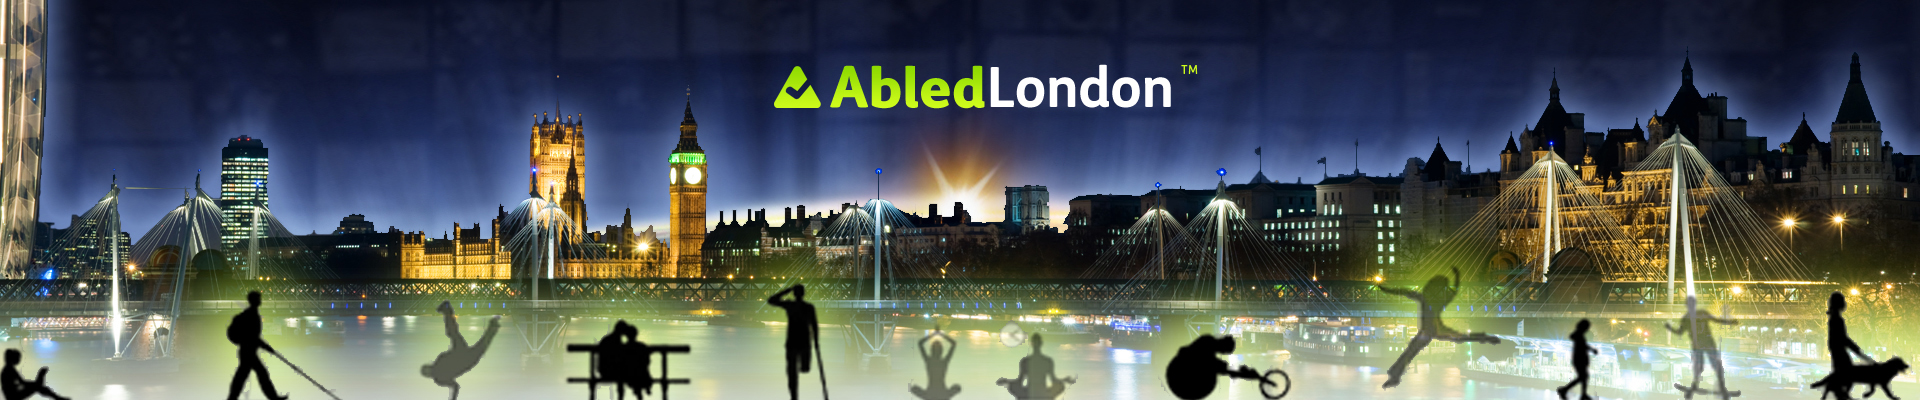 AbledLondon Banner Shows the skyline of London at night overlooking the Thames River with the 02 Arena and London Eye on the left bank and the Houses of Parliament on the right bank with the silhouettes of differently-abled people across the bottom of the banner with the Abled logo at the top.